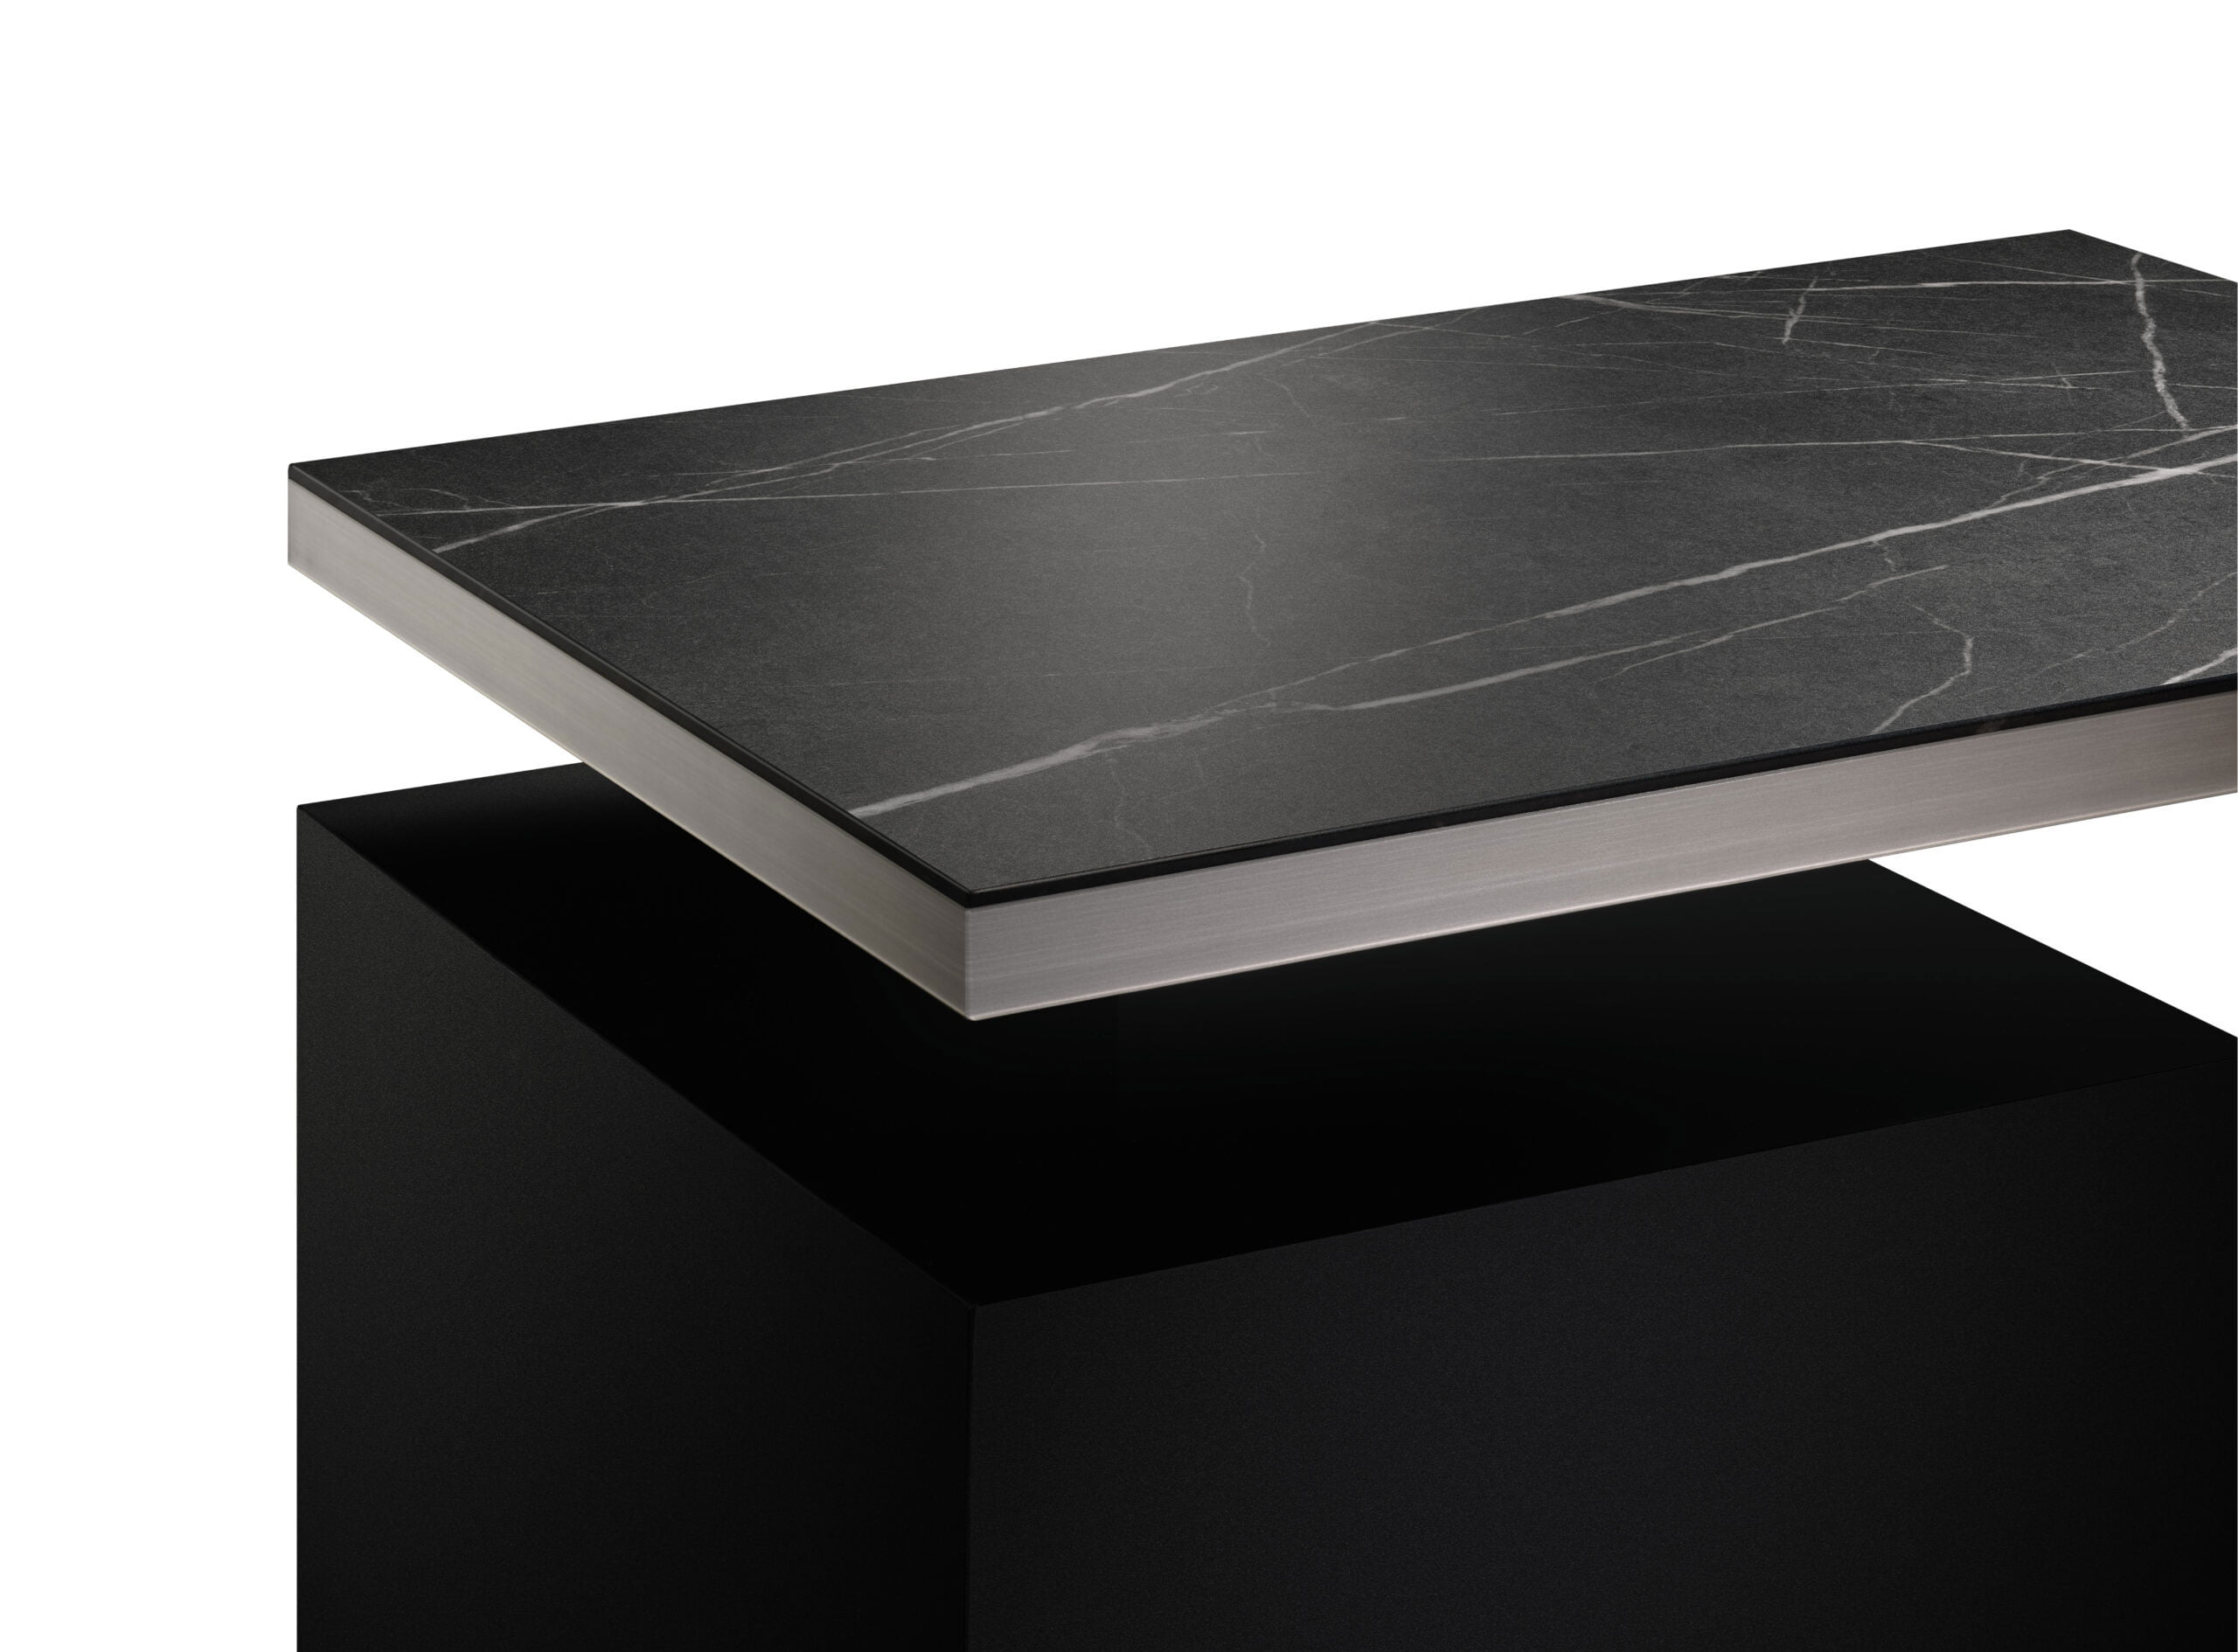 Egger Accent Egding showing black top and grey edge